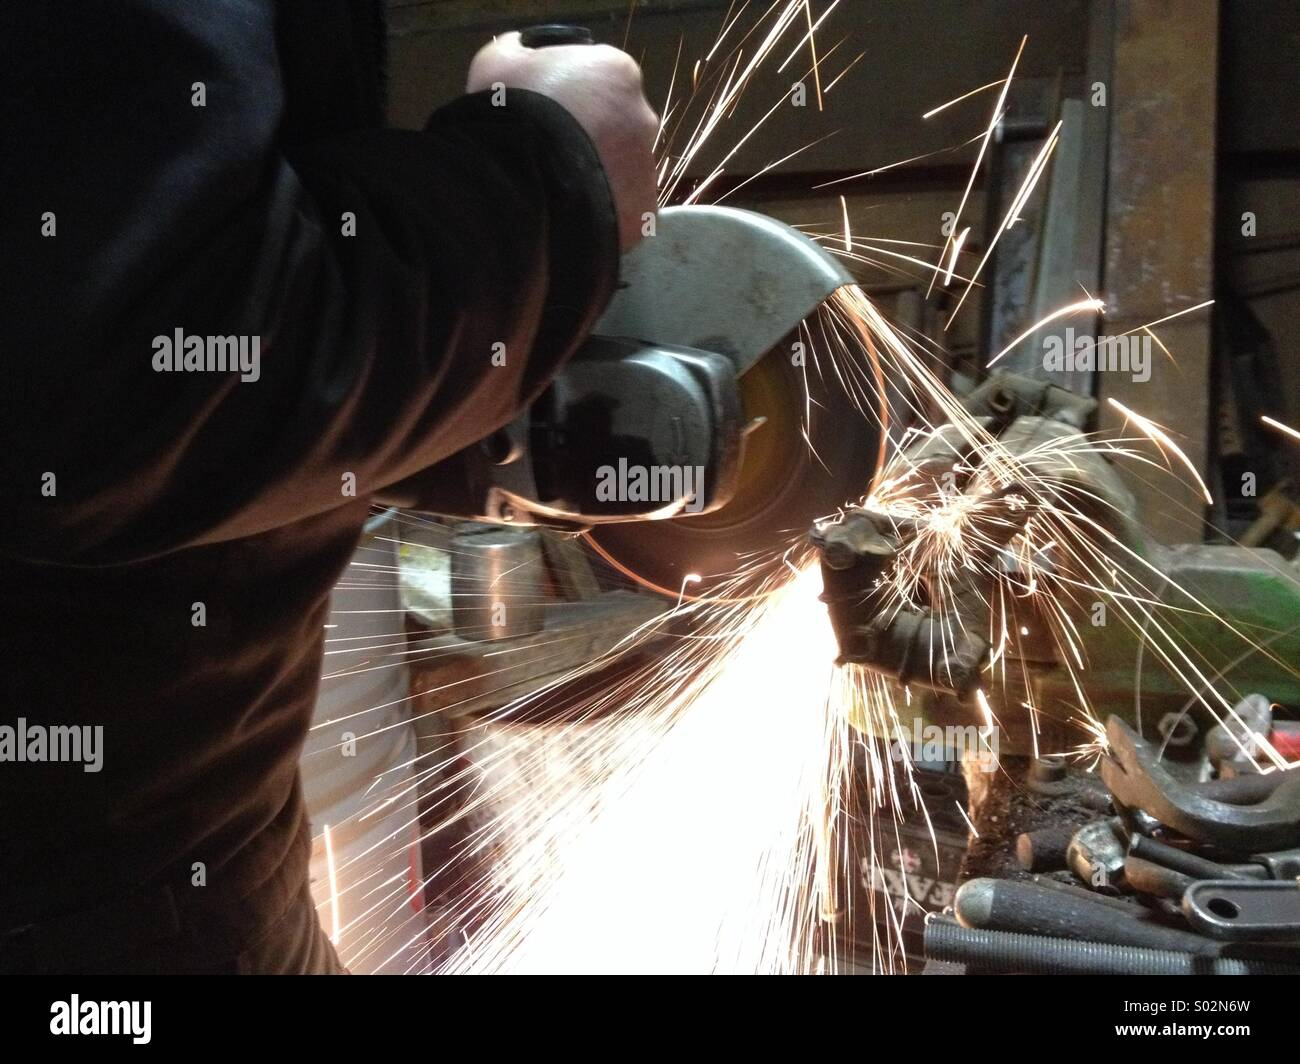 Using an angle grinder - Stock Image